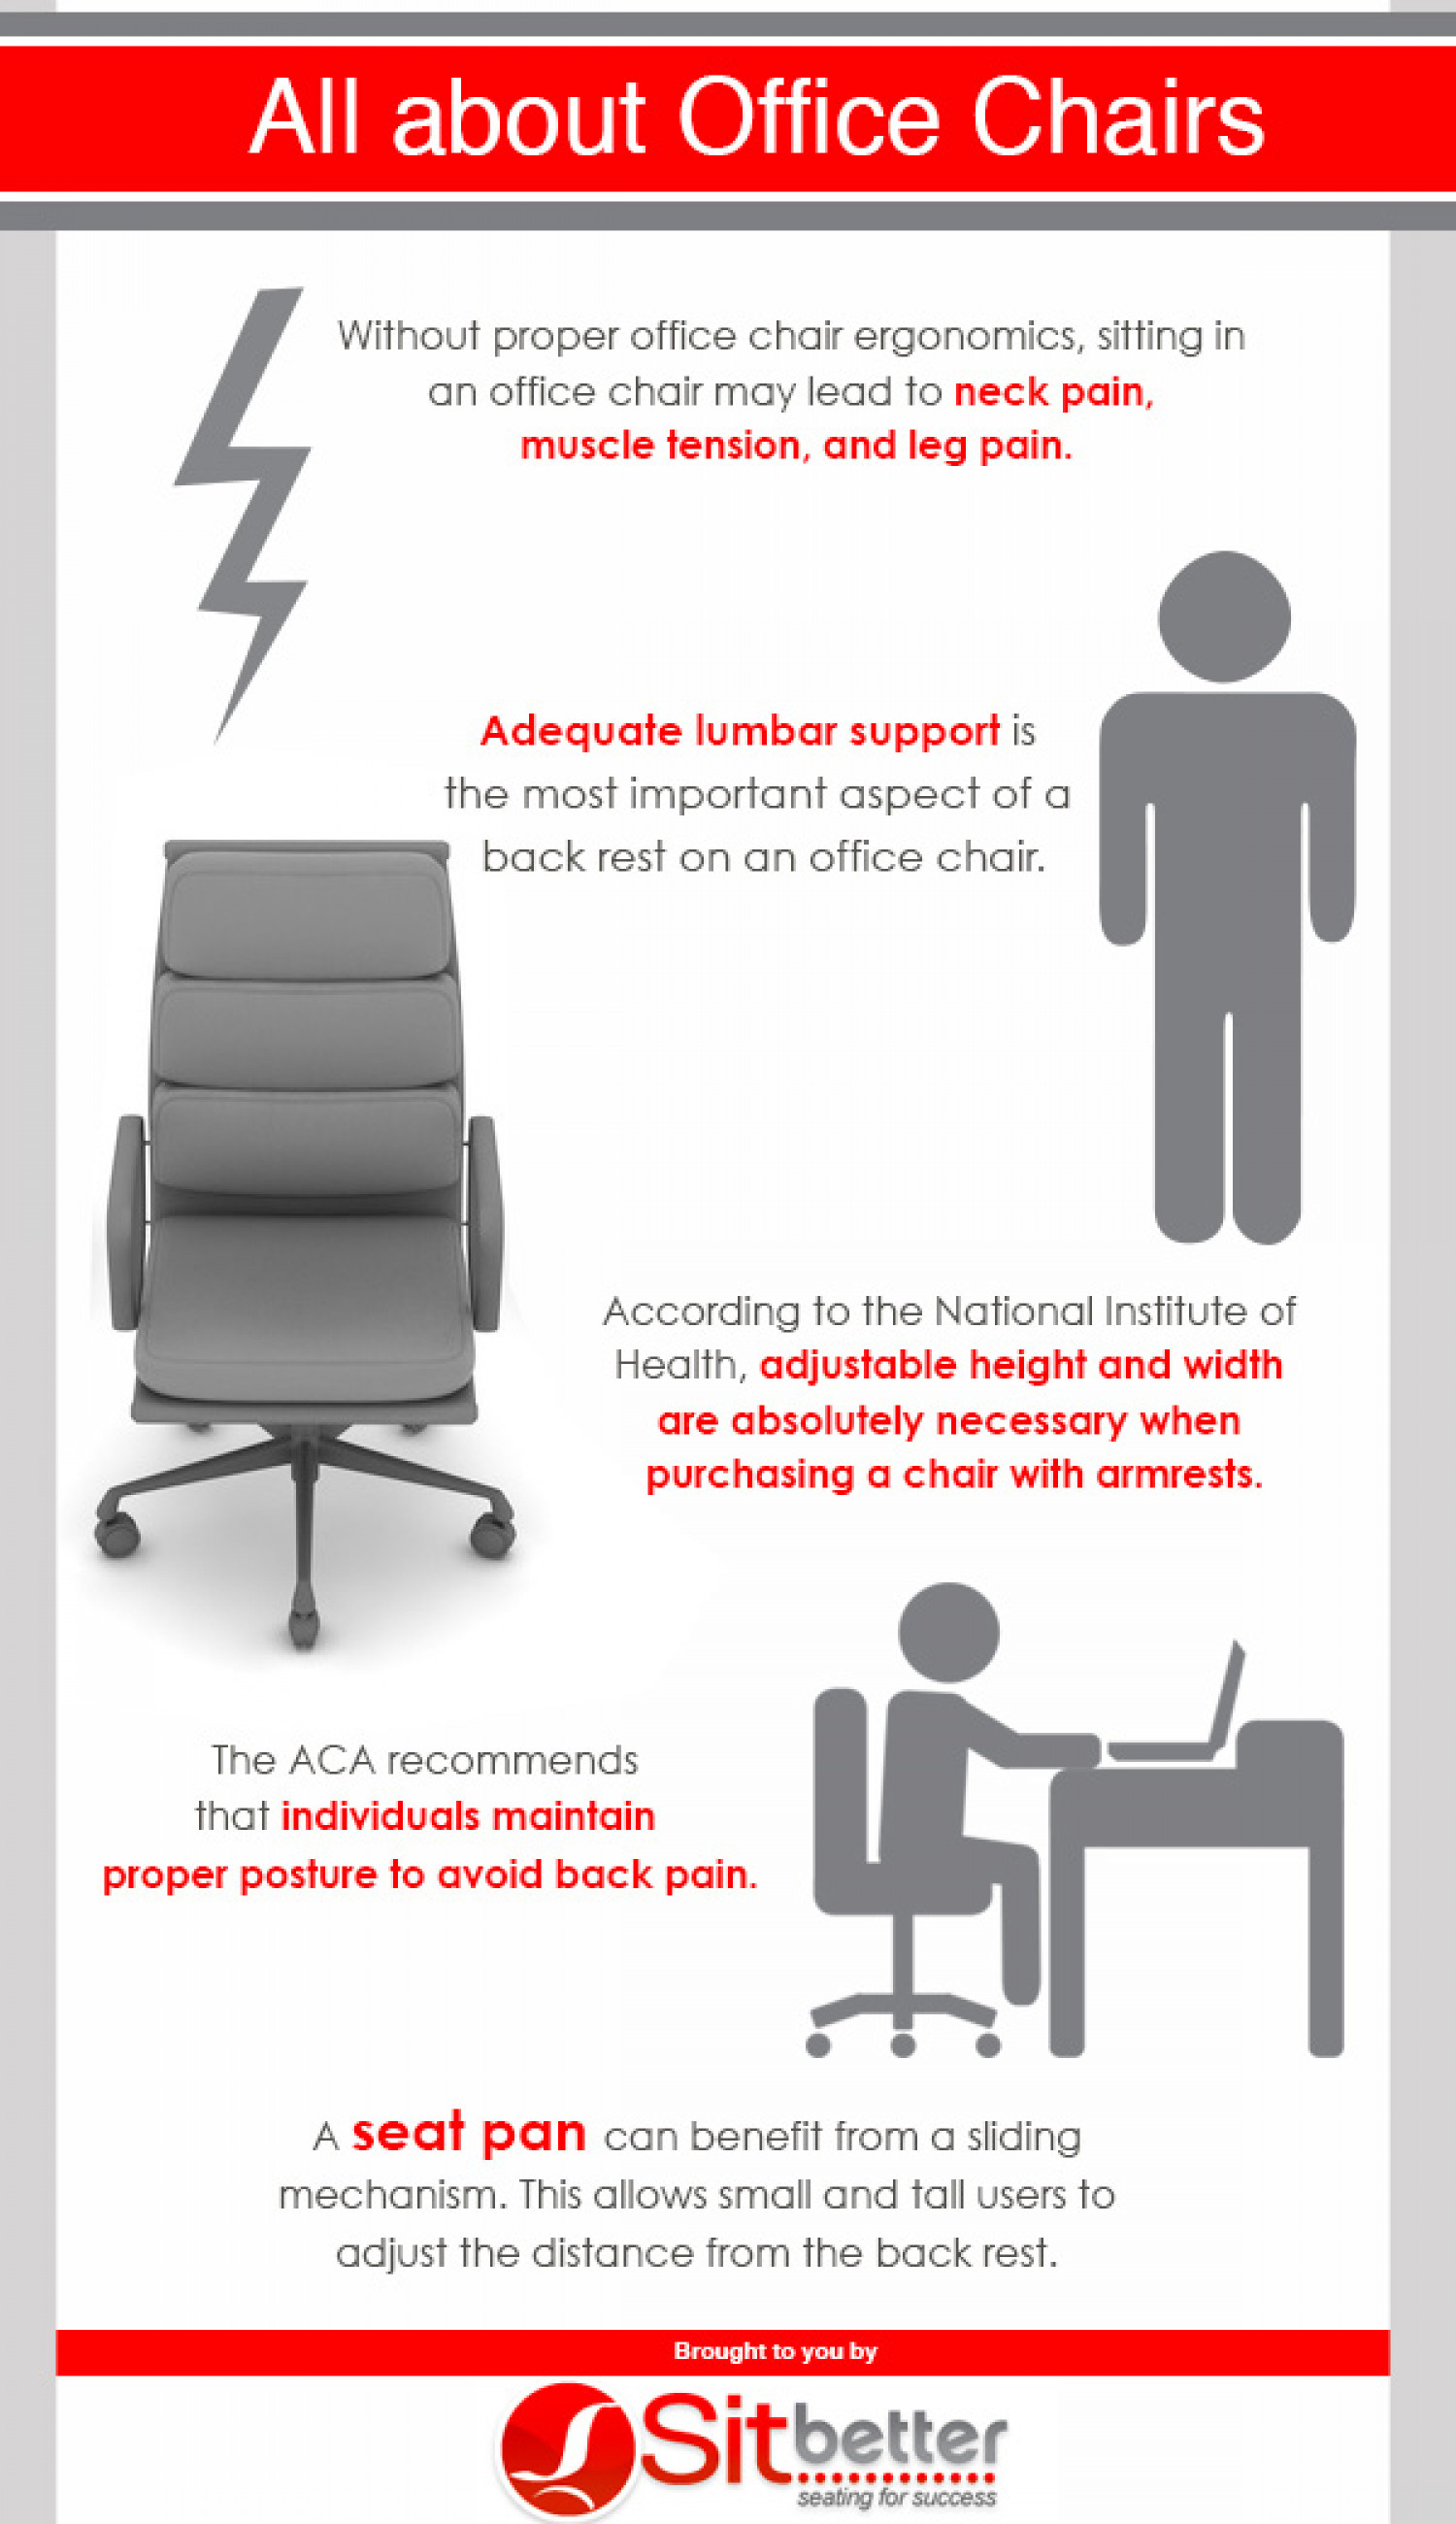 All About Office Chairs Infographic